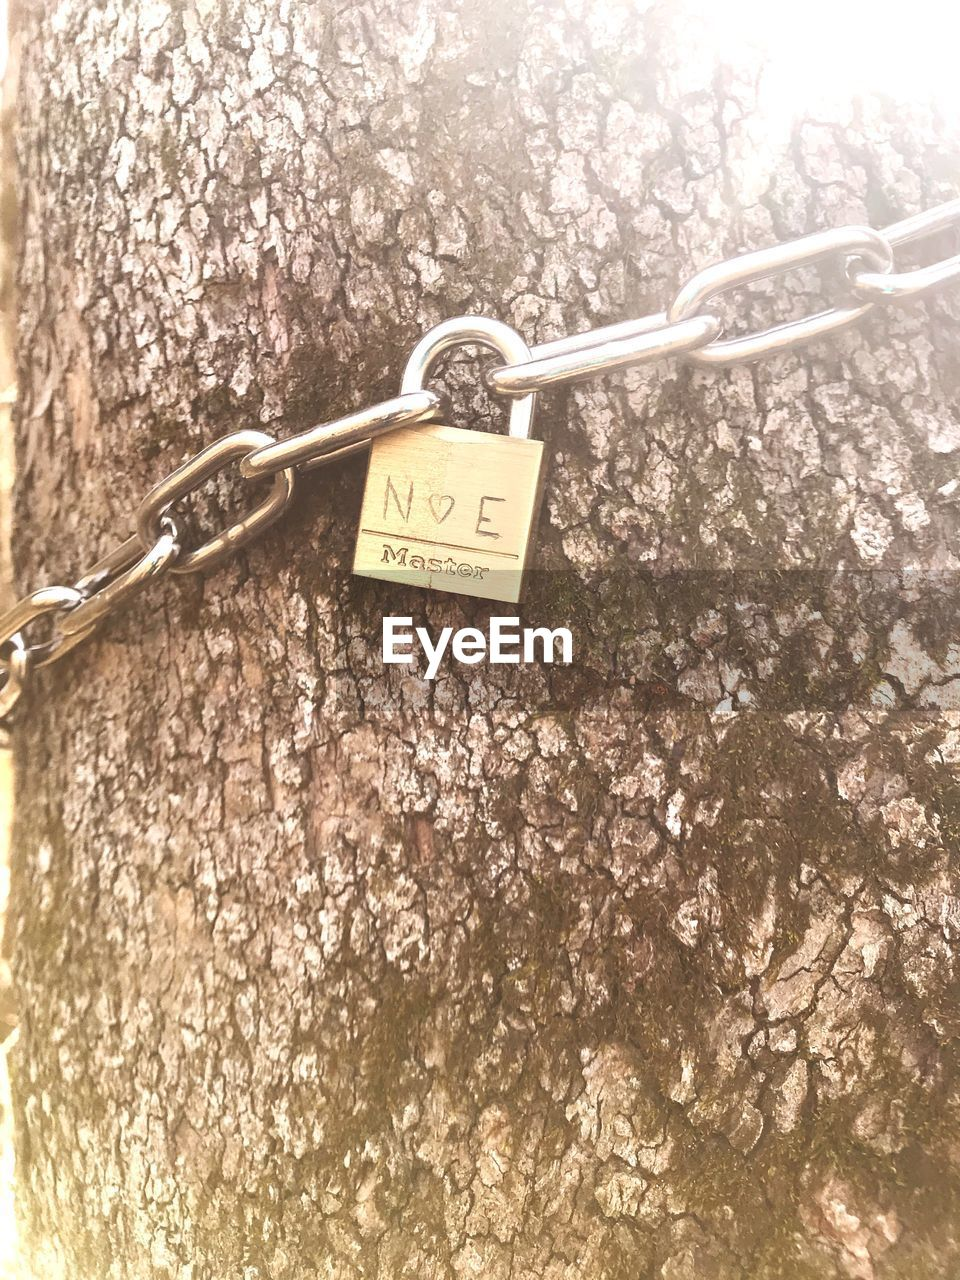 communication, text, no people, close-up, tree, love, protection, hanging, security, plant, padlock, day, lock, safety, metal, emotion, positive emotion, nature, outdoors, western script, message